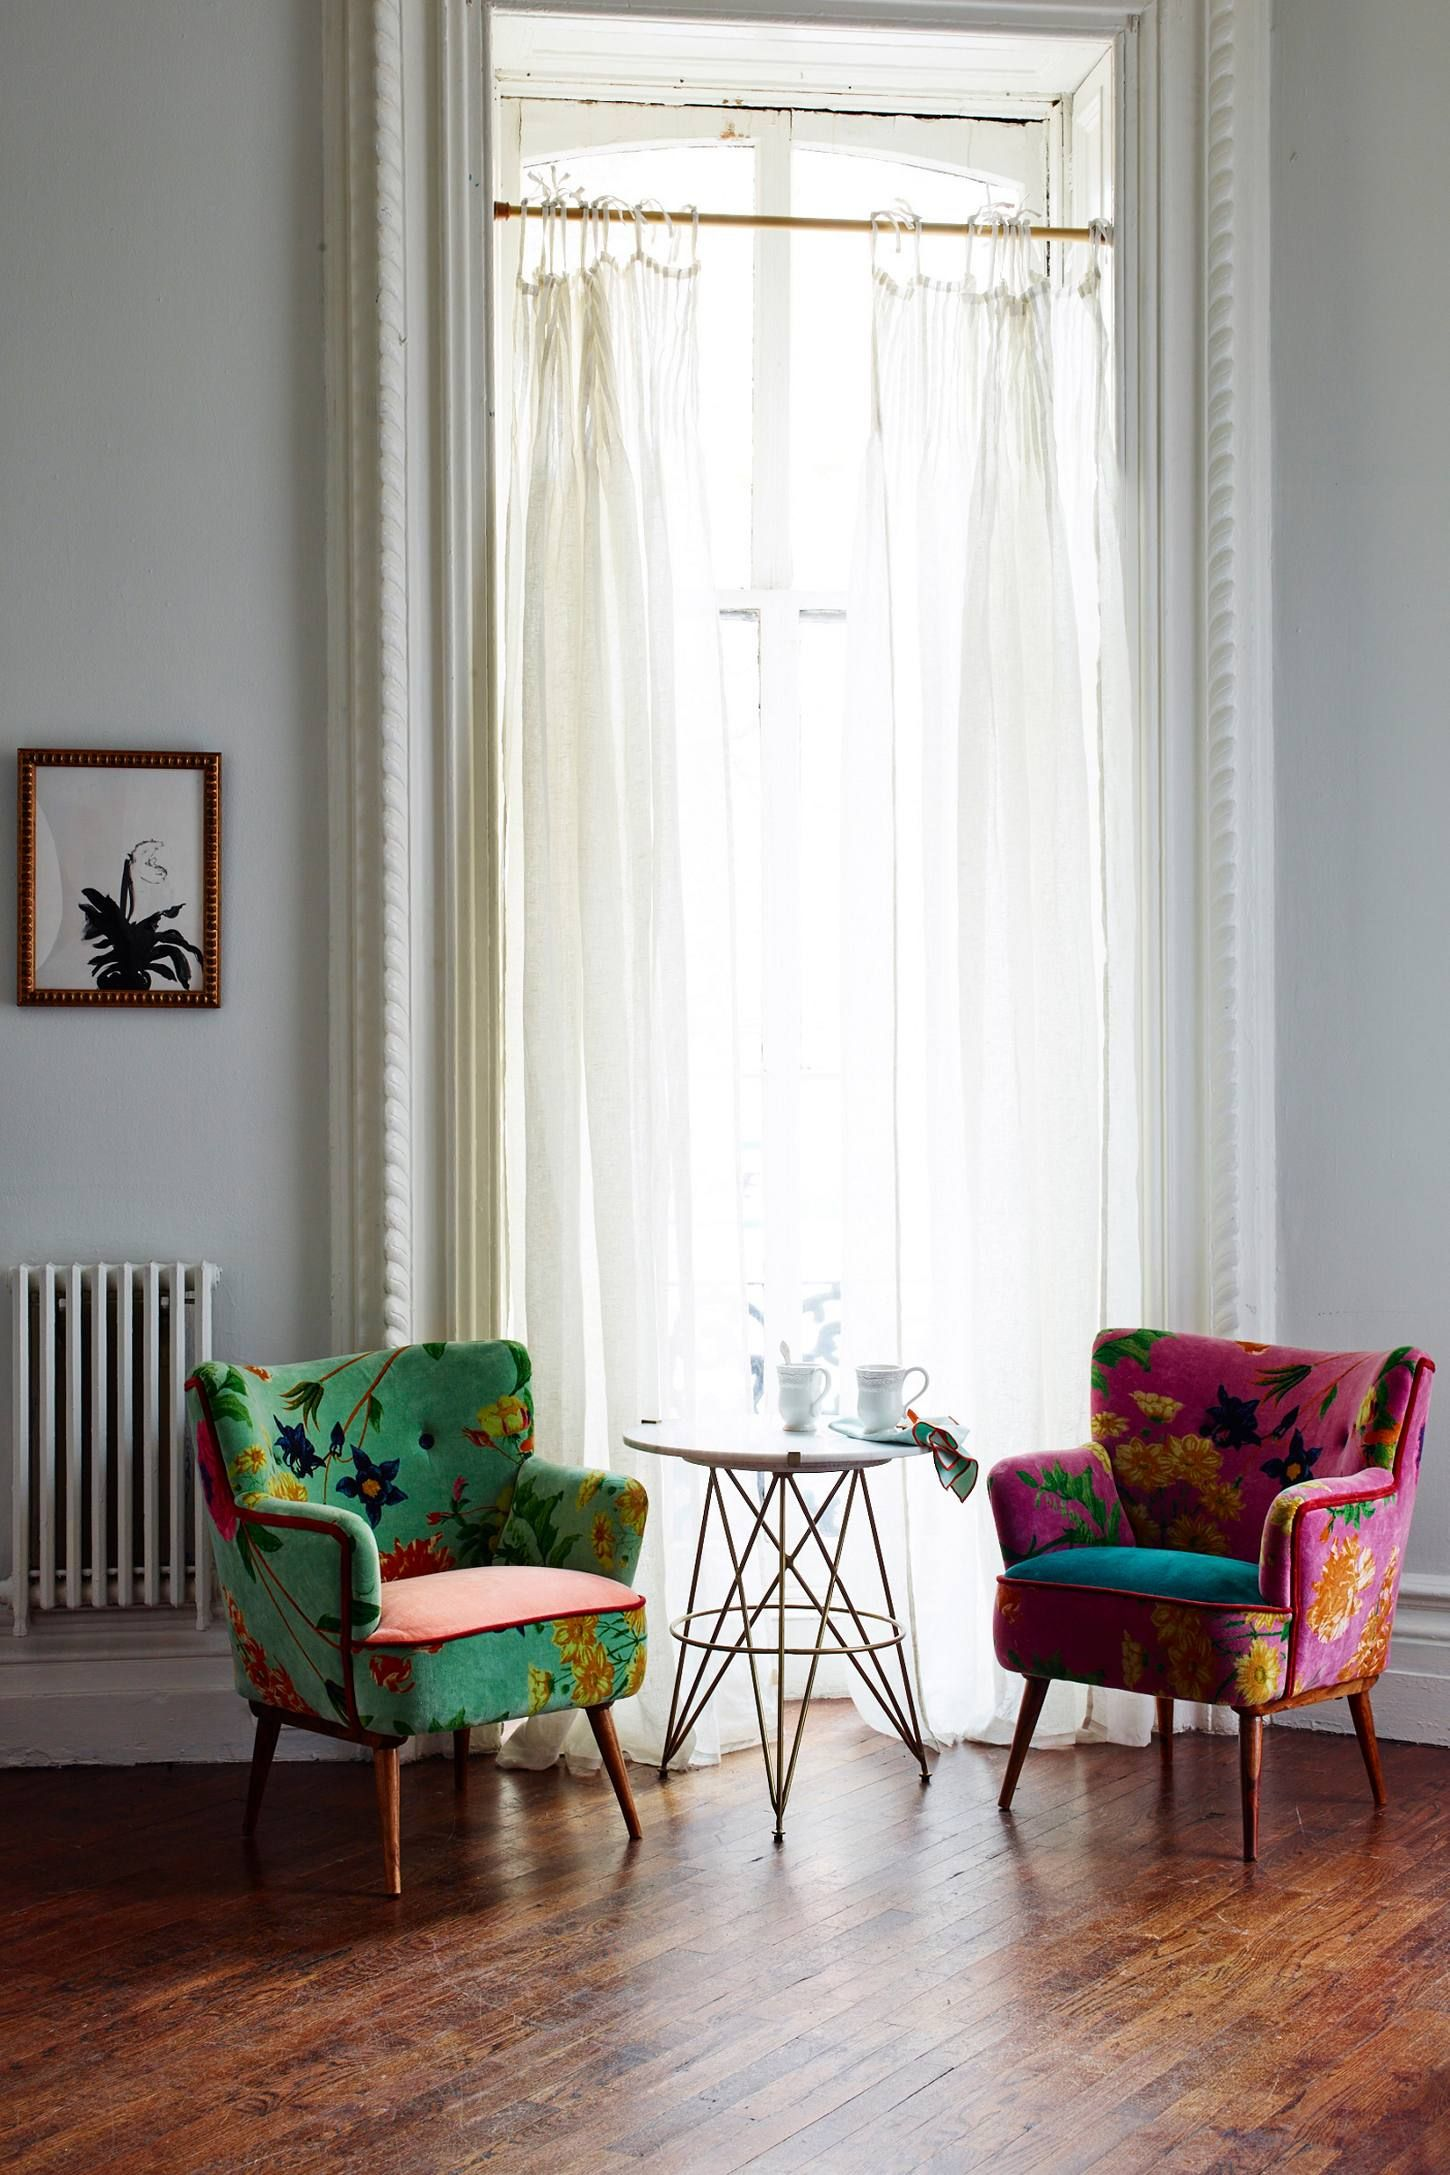 Wondrous Floret Petite Accent Chair In 2019 Decorating Accent Gamerscity Chair Design For Home Gamerscityorg